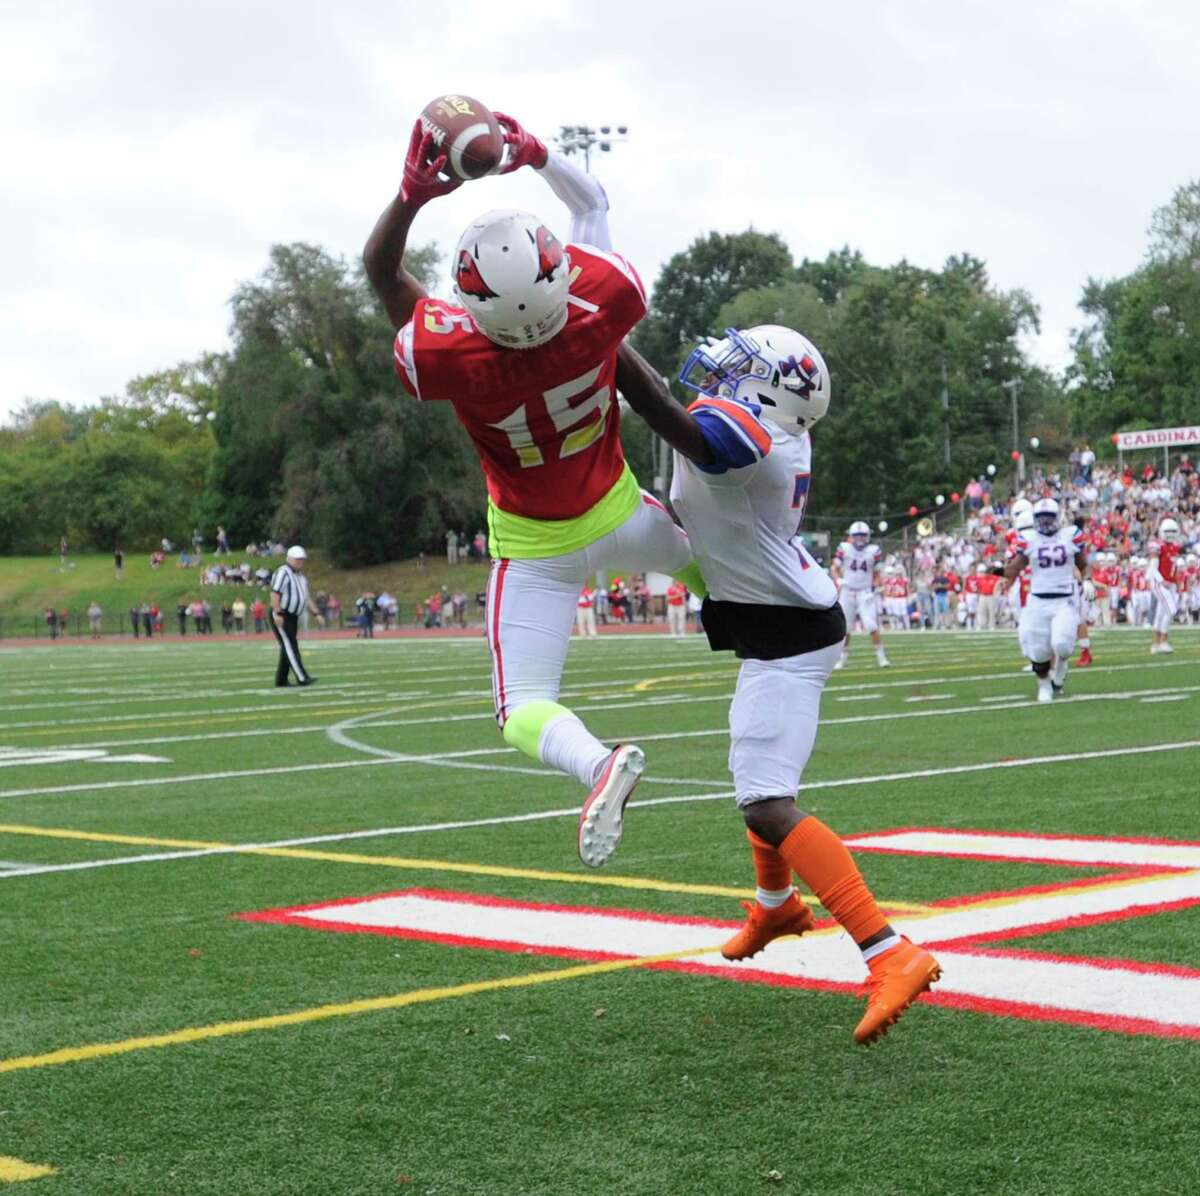 Greenwich's AJ Barber (15) catches a pass for a touchdown against Danbury's Xavier Ross (7) in an FCIAC football season opener at Cardinal Stadium on Sept. 14, 2019 in Greenwich, Connecticut.